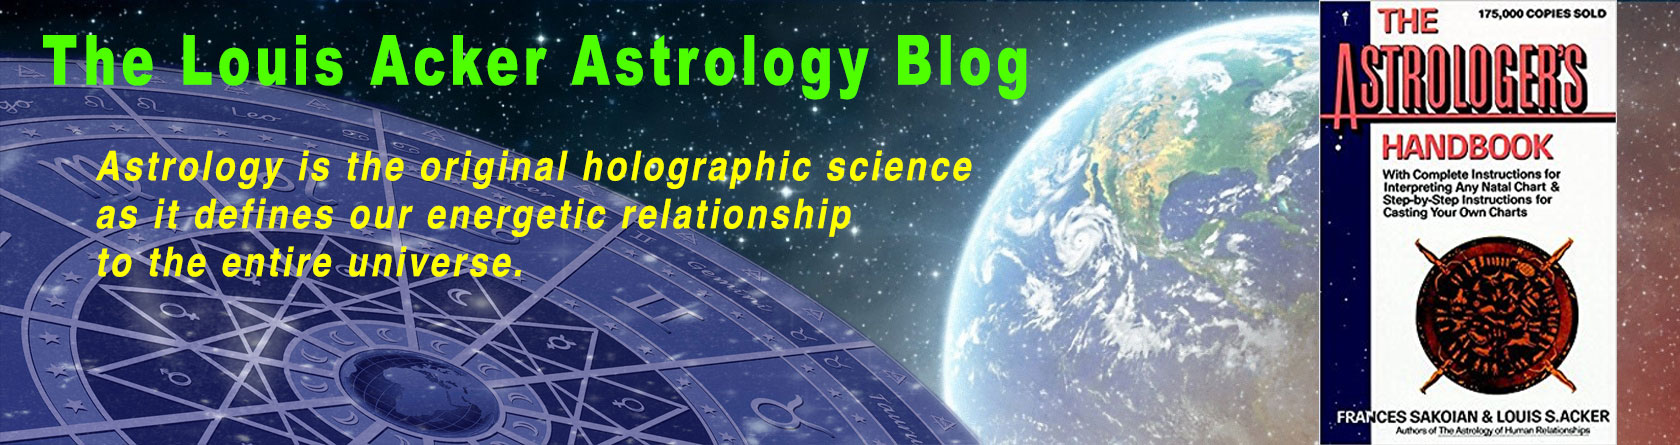 The Louis Acker Astrology Blog